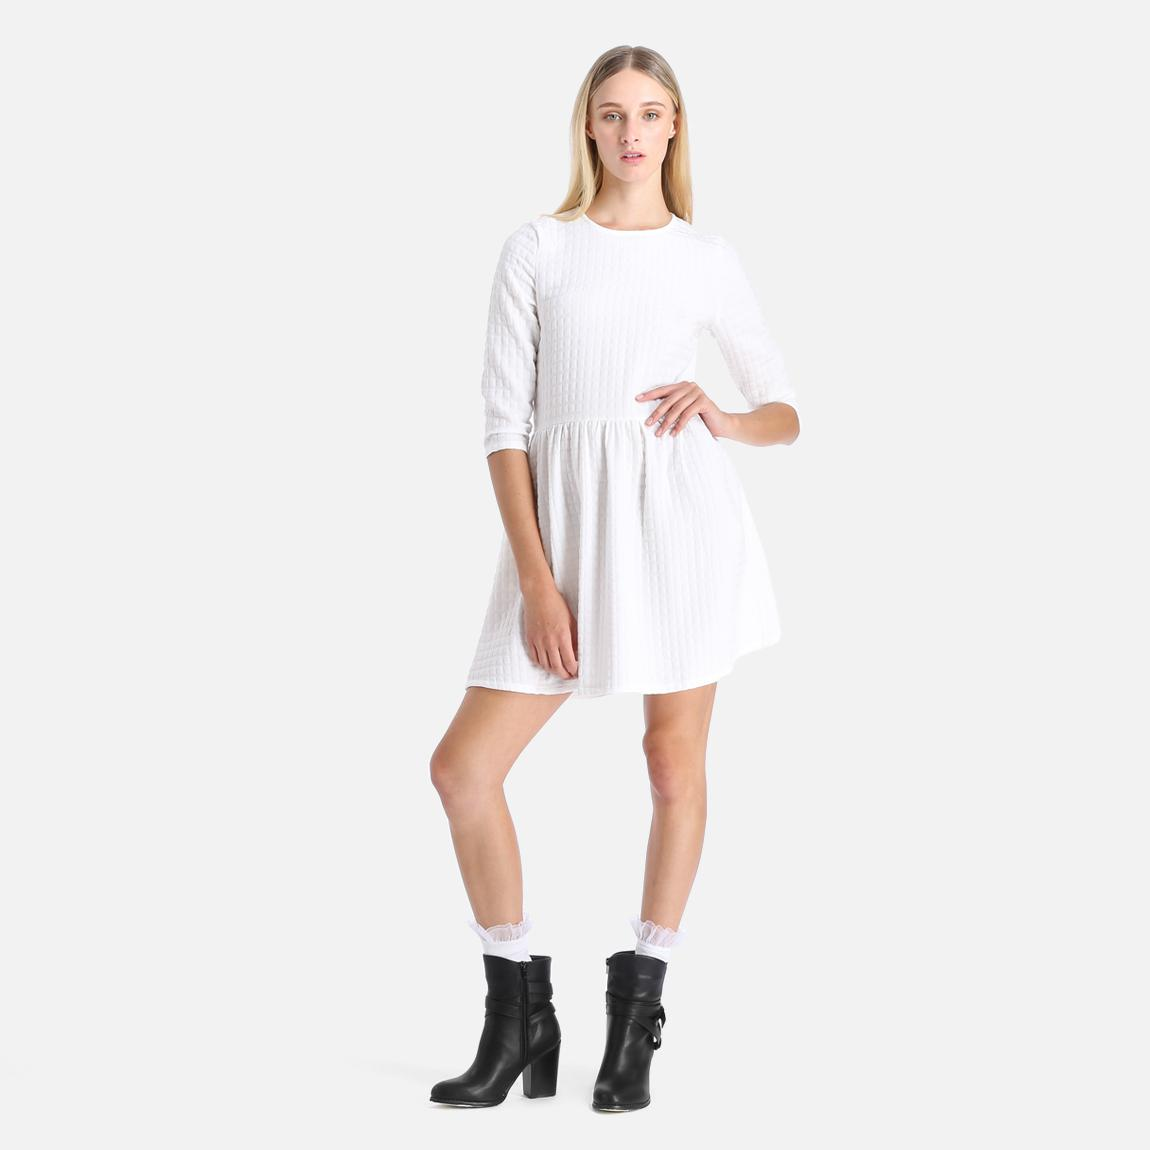 496cbf534e3c Ladies Skater Dress - White 1 Glamorous Casual